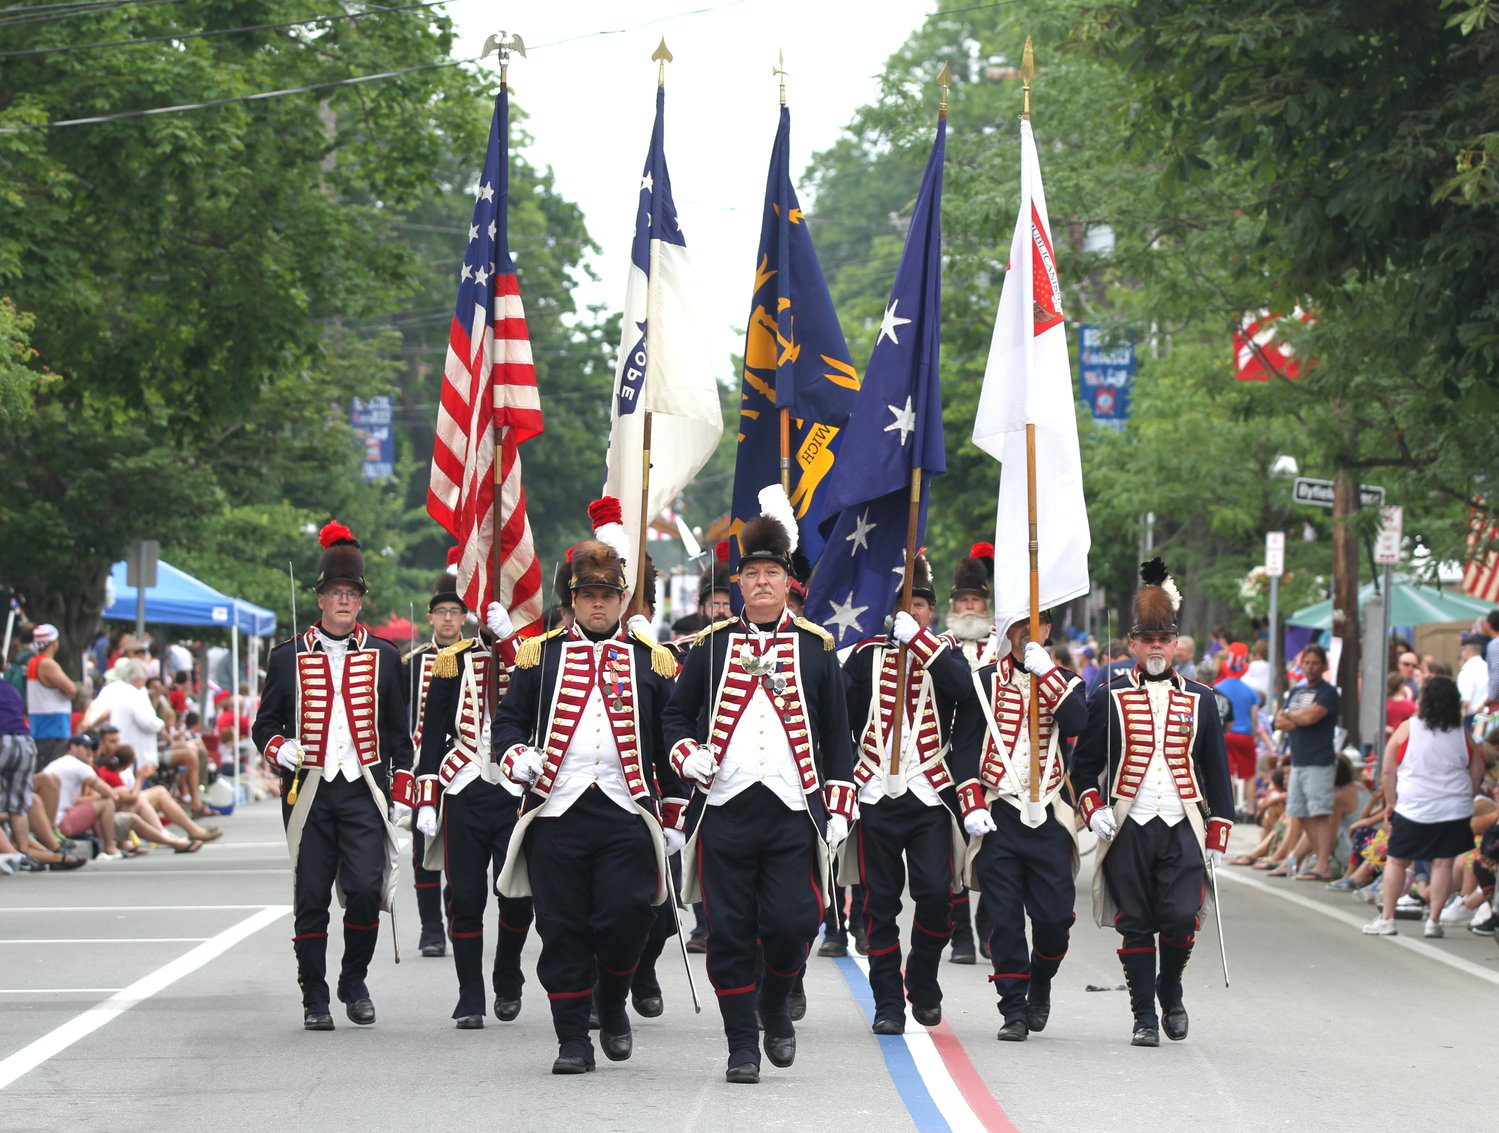 Don't miss Bristol's famous Fourth of July parade and celebration!